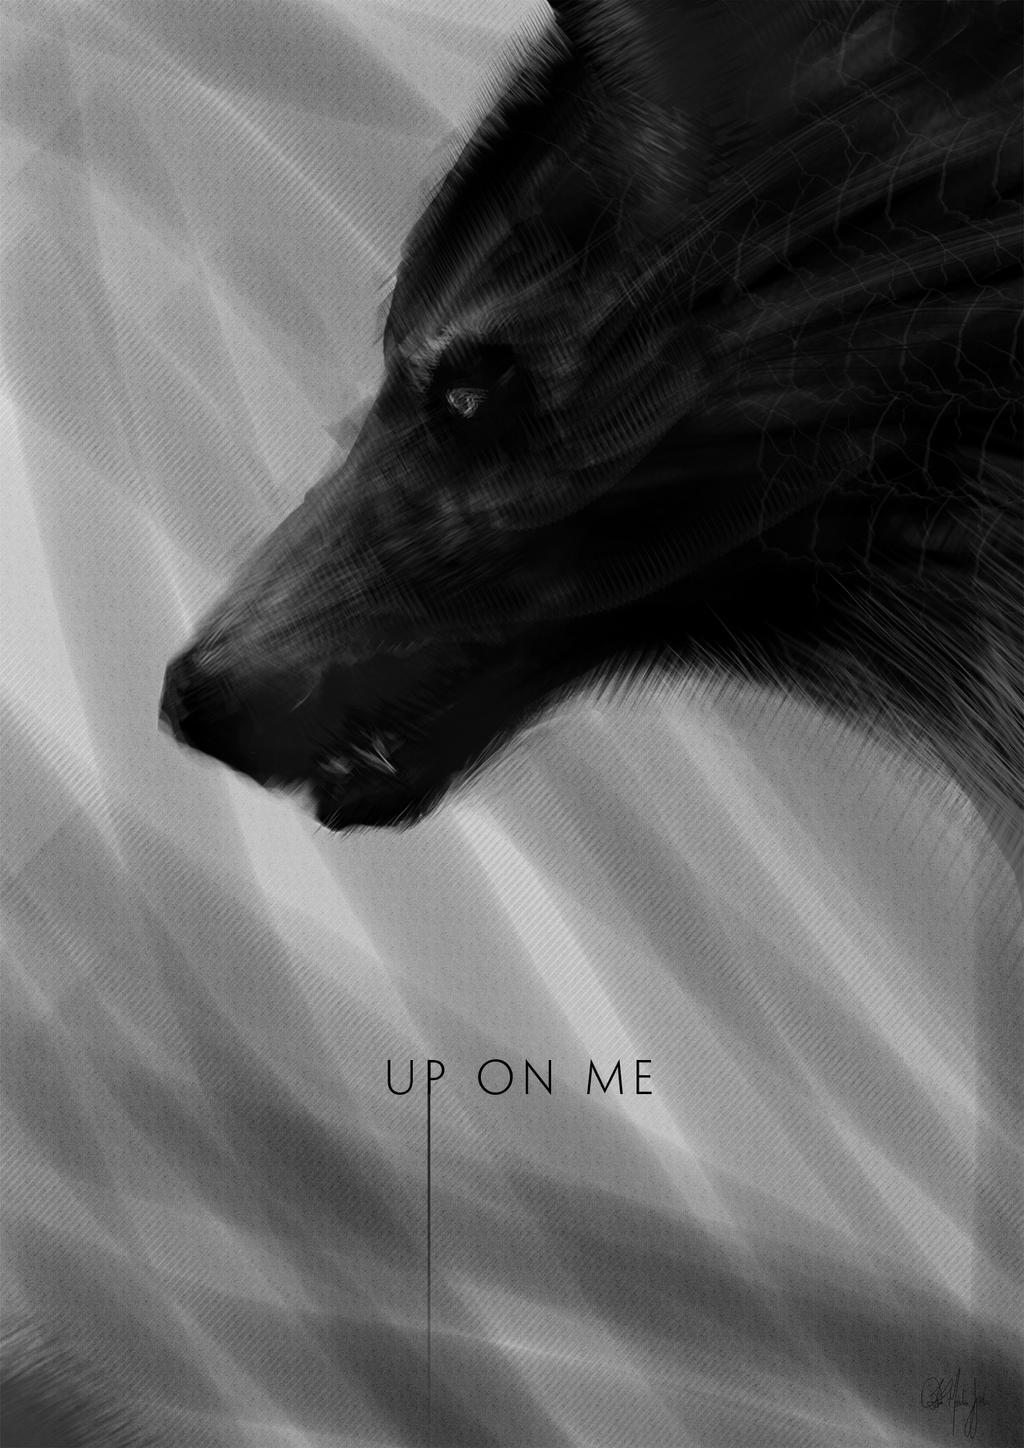 Up on me by Kimagu